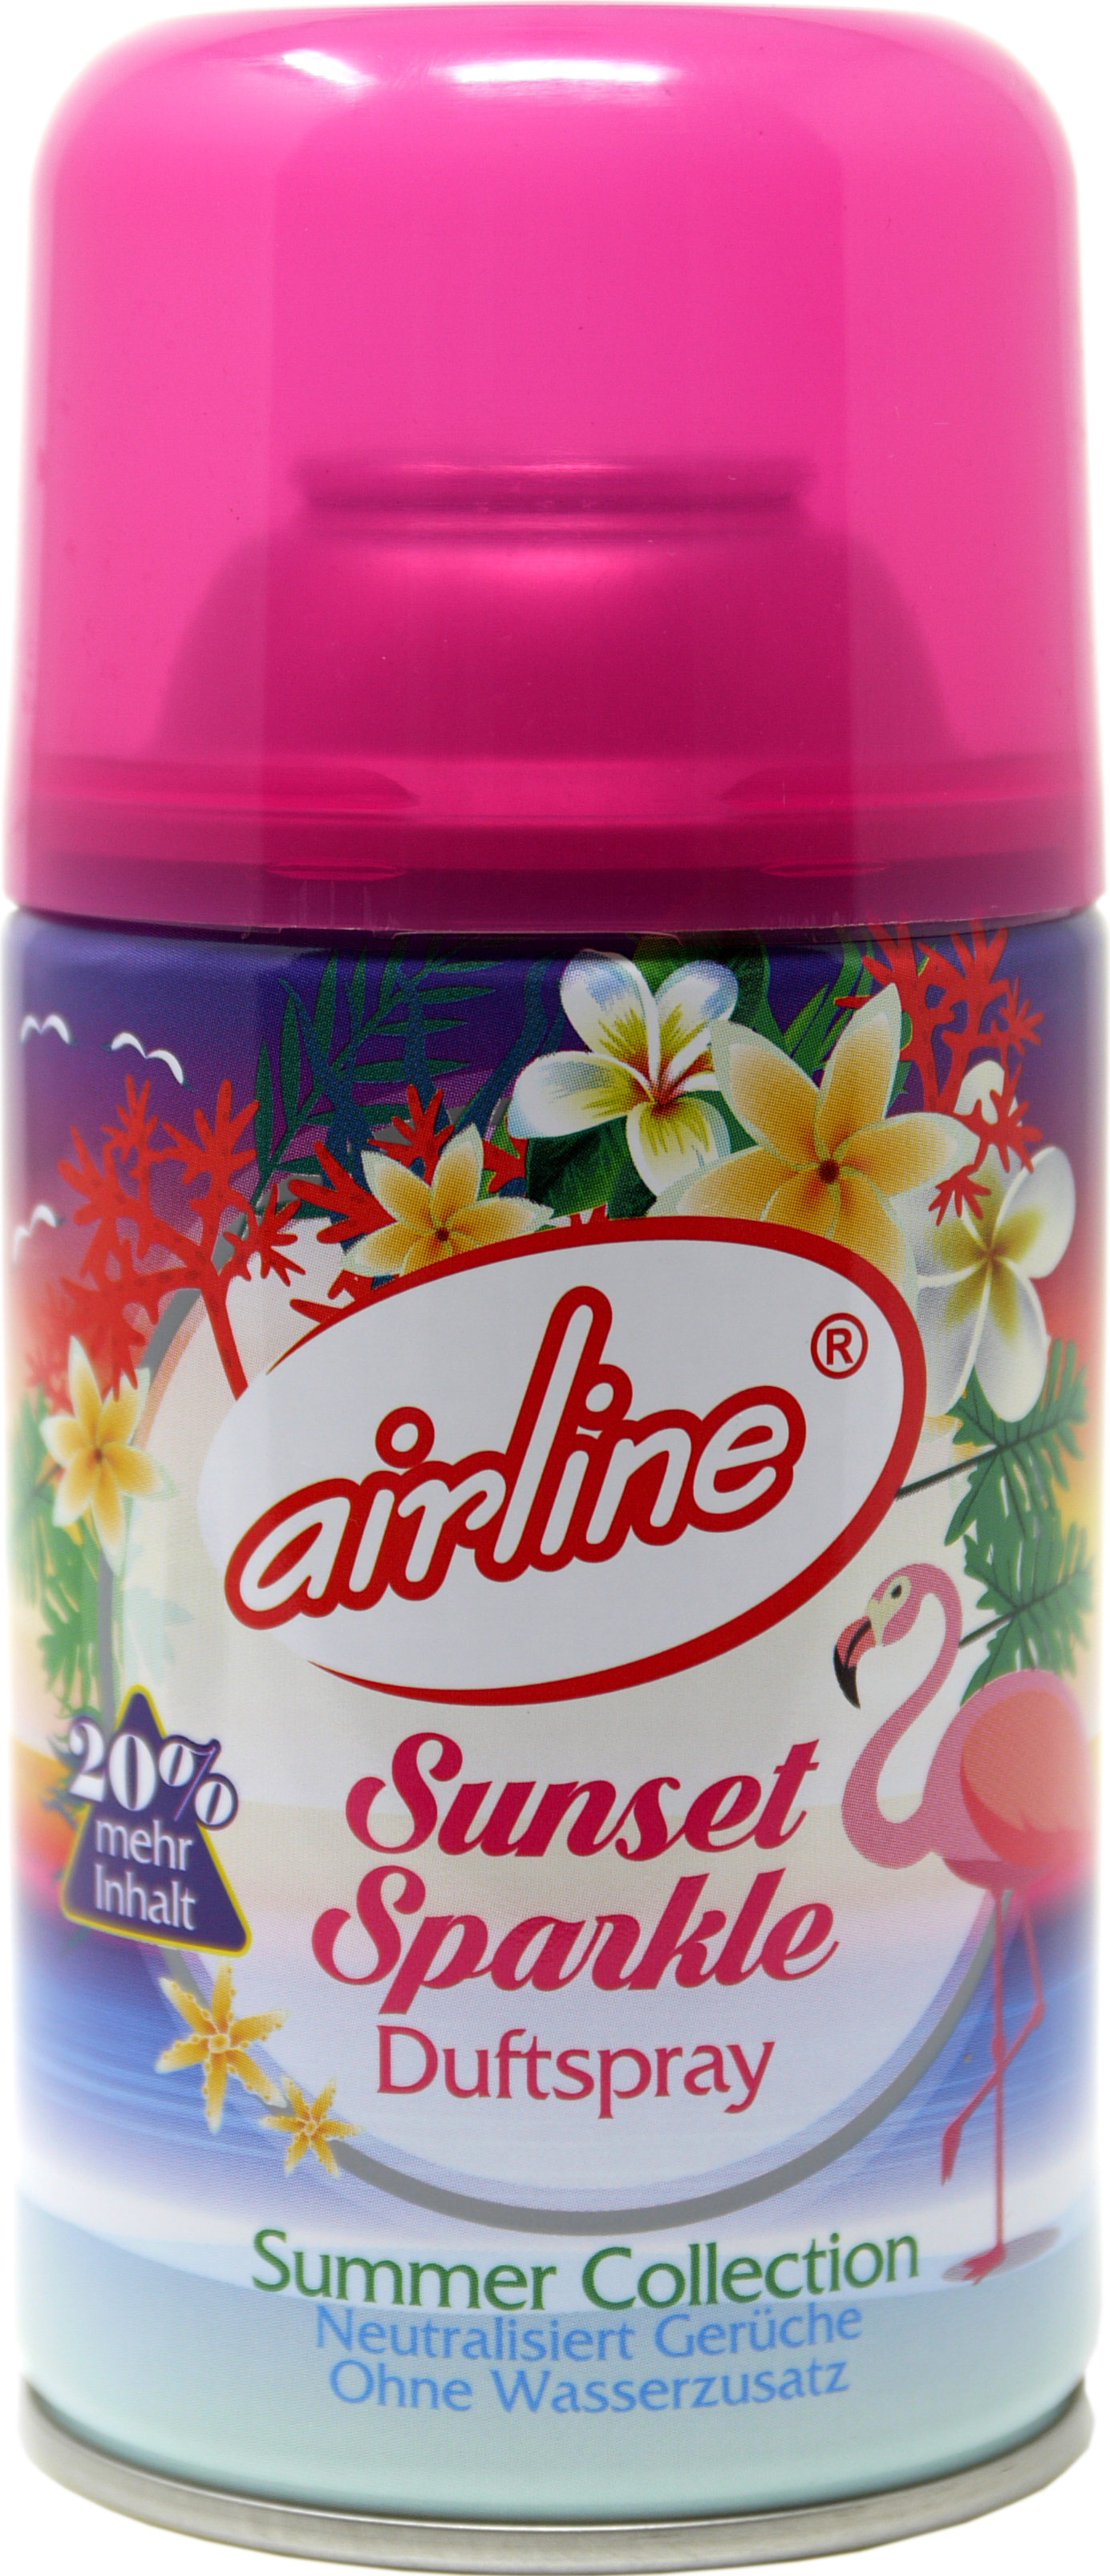 00532 - summer collection 300 ml - sunset sparkle